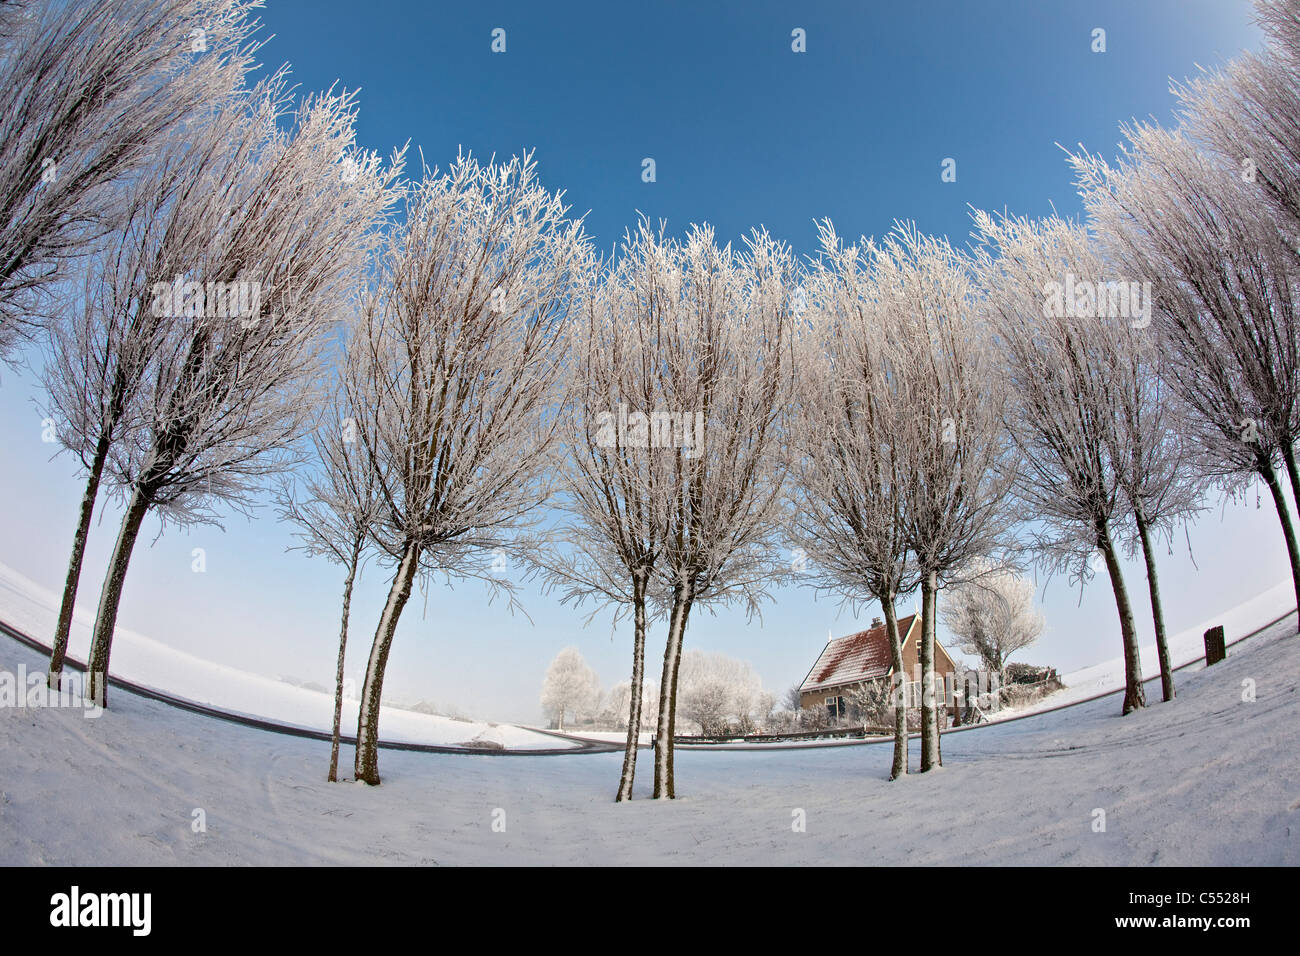 The Netherlands, Ferwoude, Country road and trees in snow and frost. Fisheye lens. - Stock Image